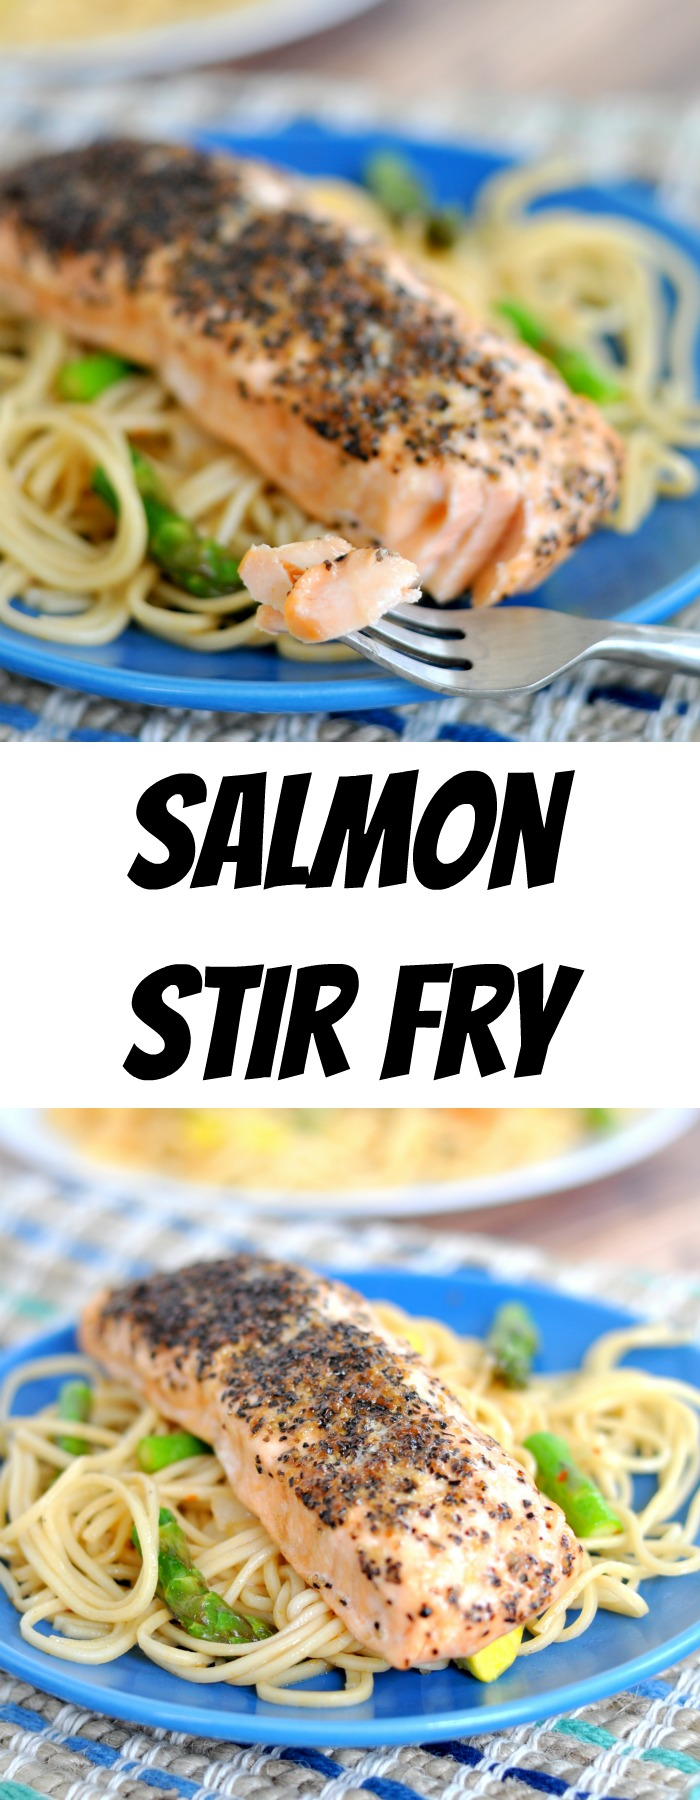 Peppered Salmon Stir Fry makes a quick, easy and delicious weeknight meal!